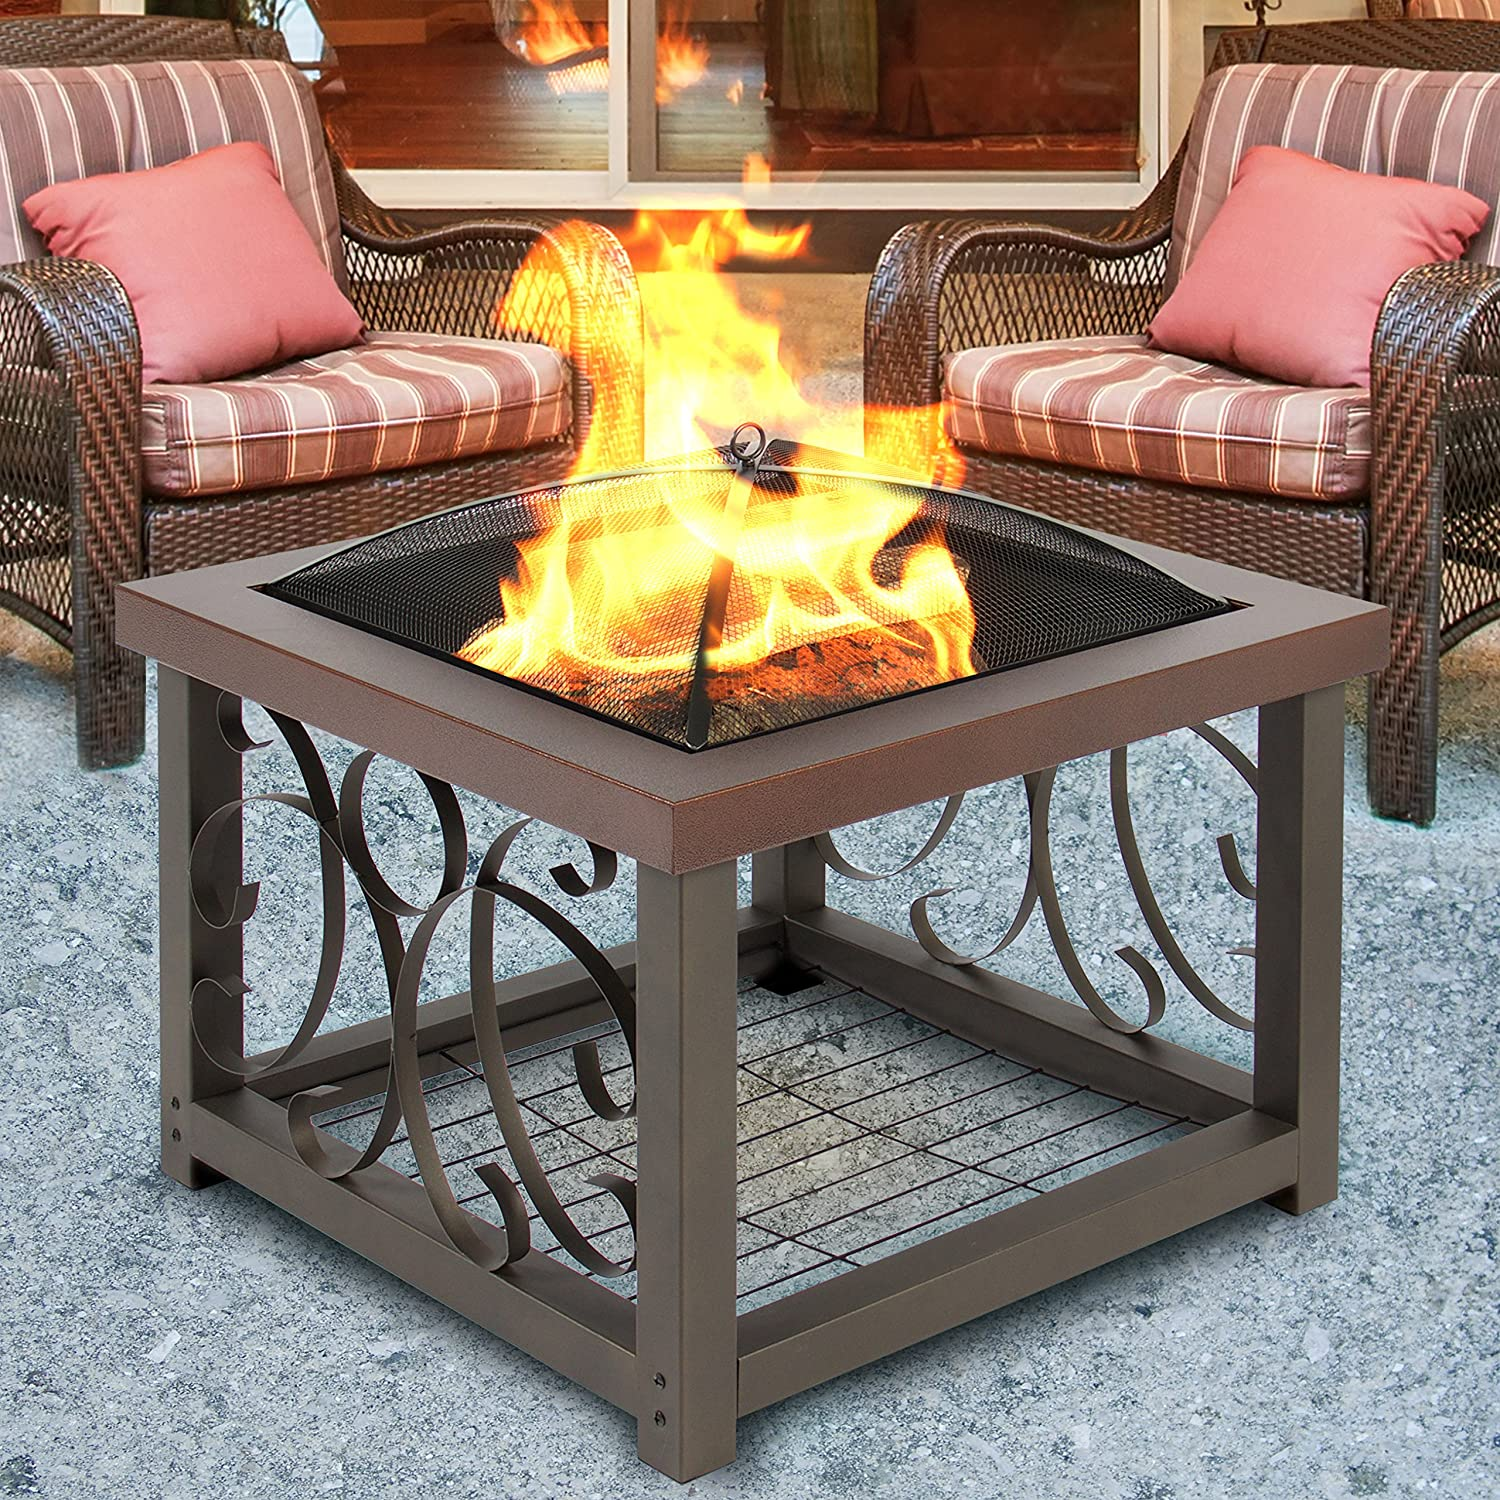 outdoor fireplace tables. Amazon com  Best Choice Products Outdoor Cocktail Fire Pit Table Firepit Patio Garden Stove Fireplace